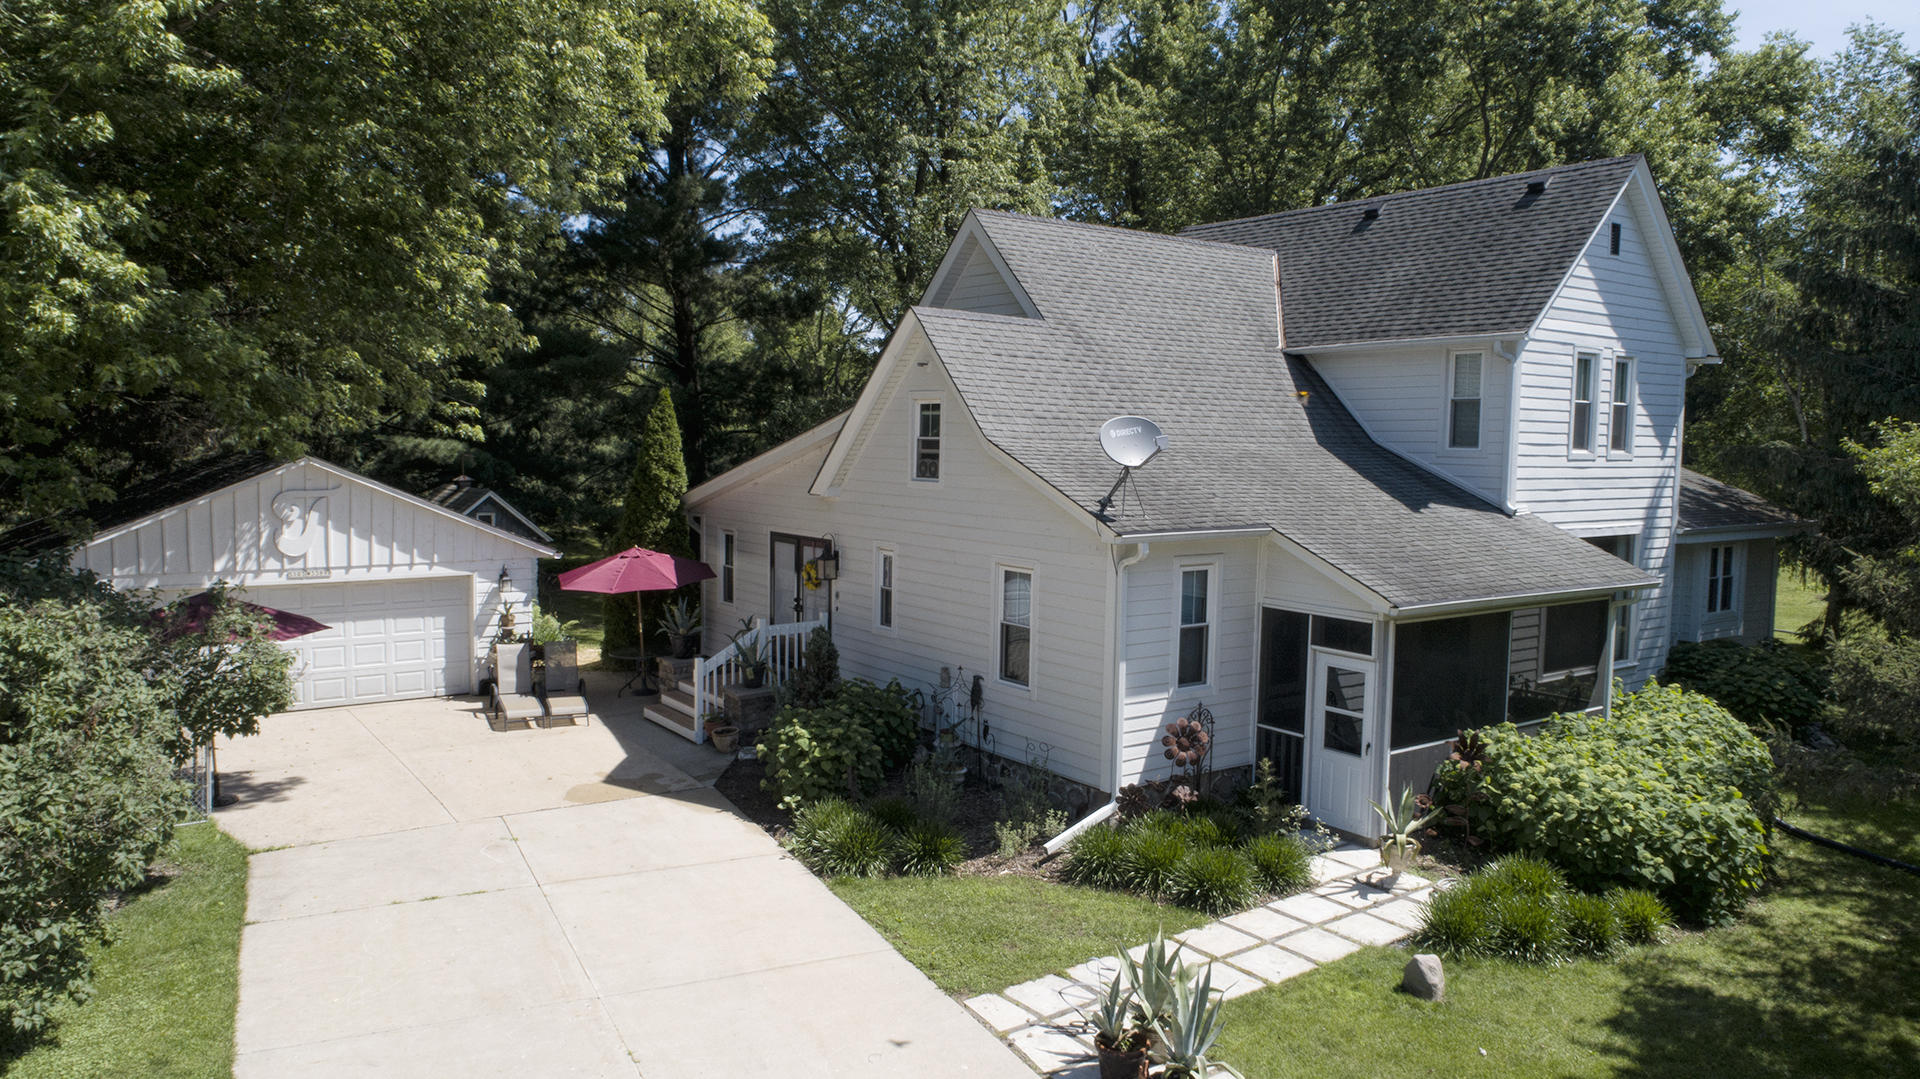 Mukwonago Homes for Sale | Mahler Sotheby's International Realty